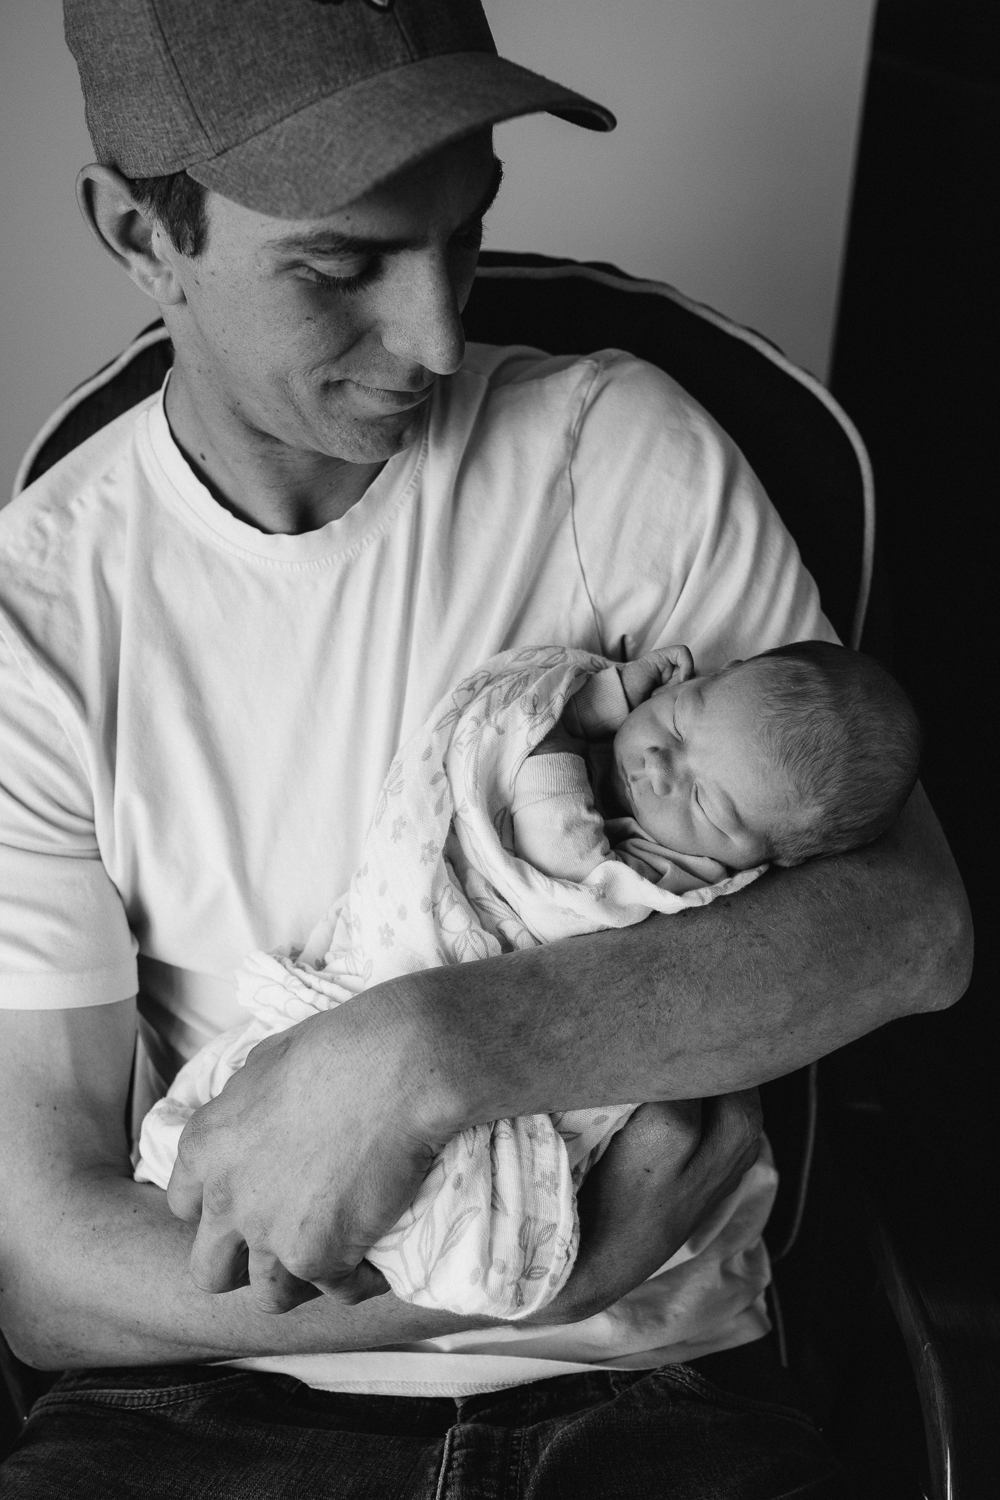 new father holding sleeping 1 week old baby girl in rocking chair - newmarket family photos